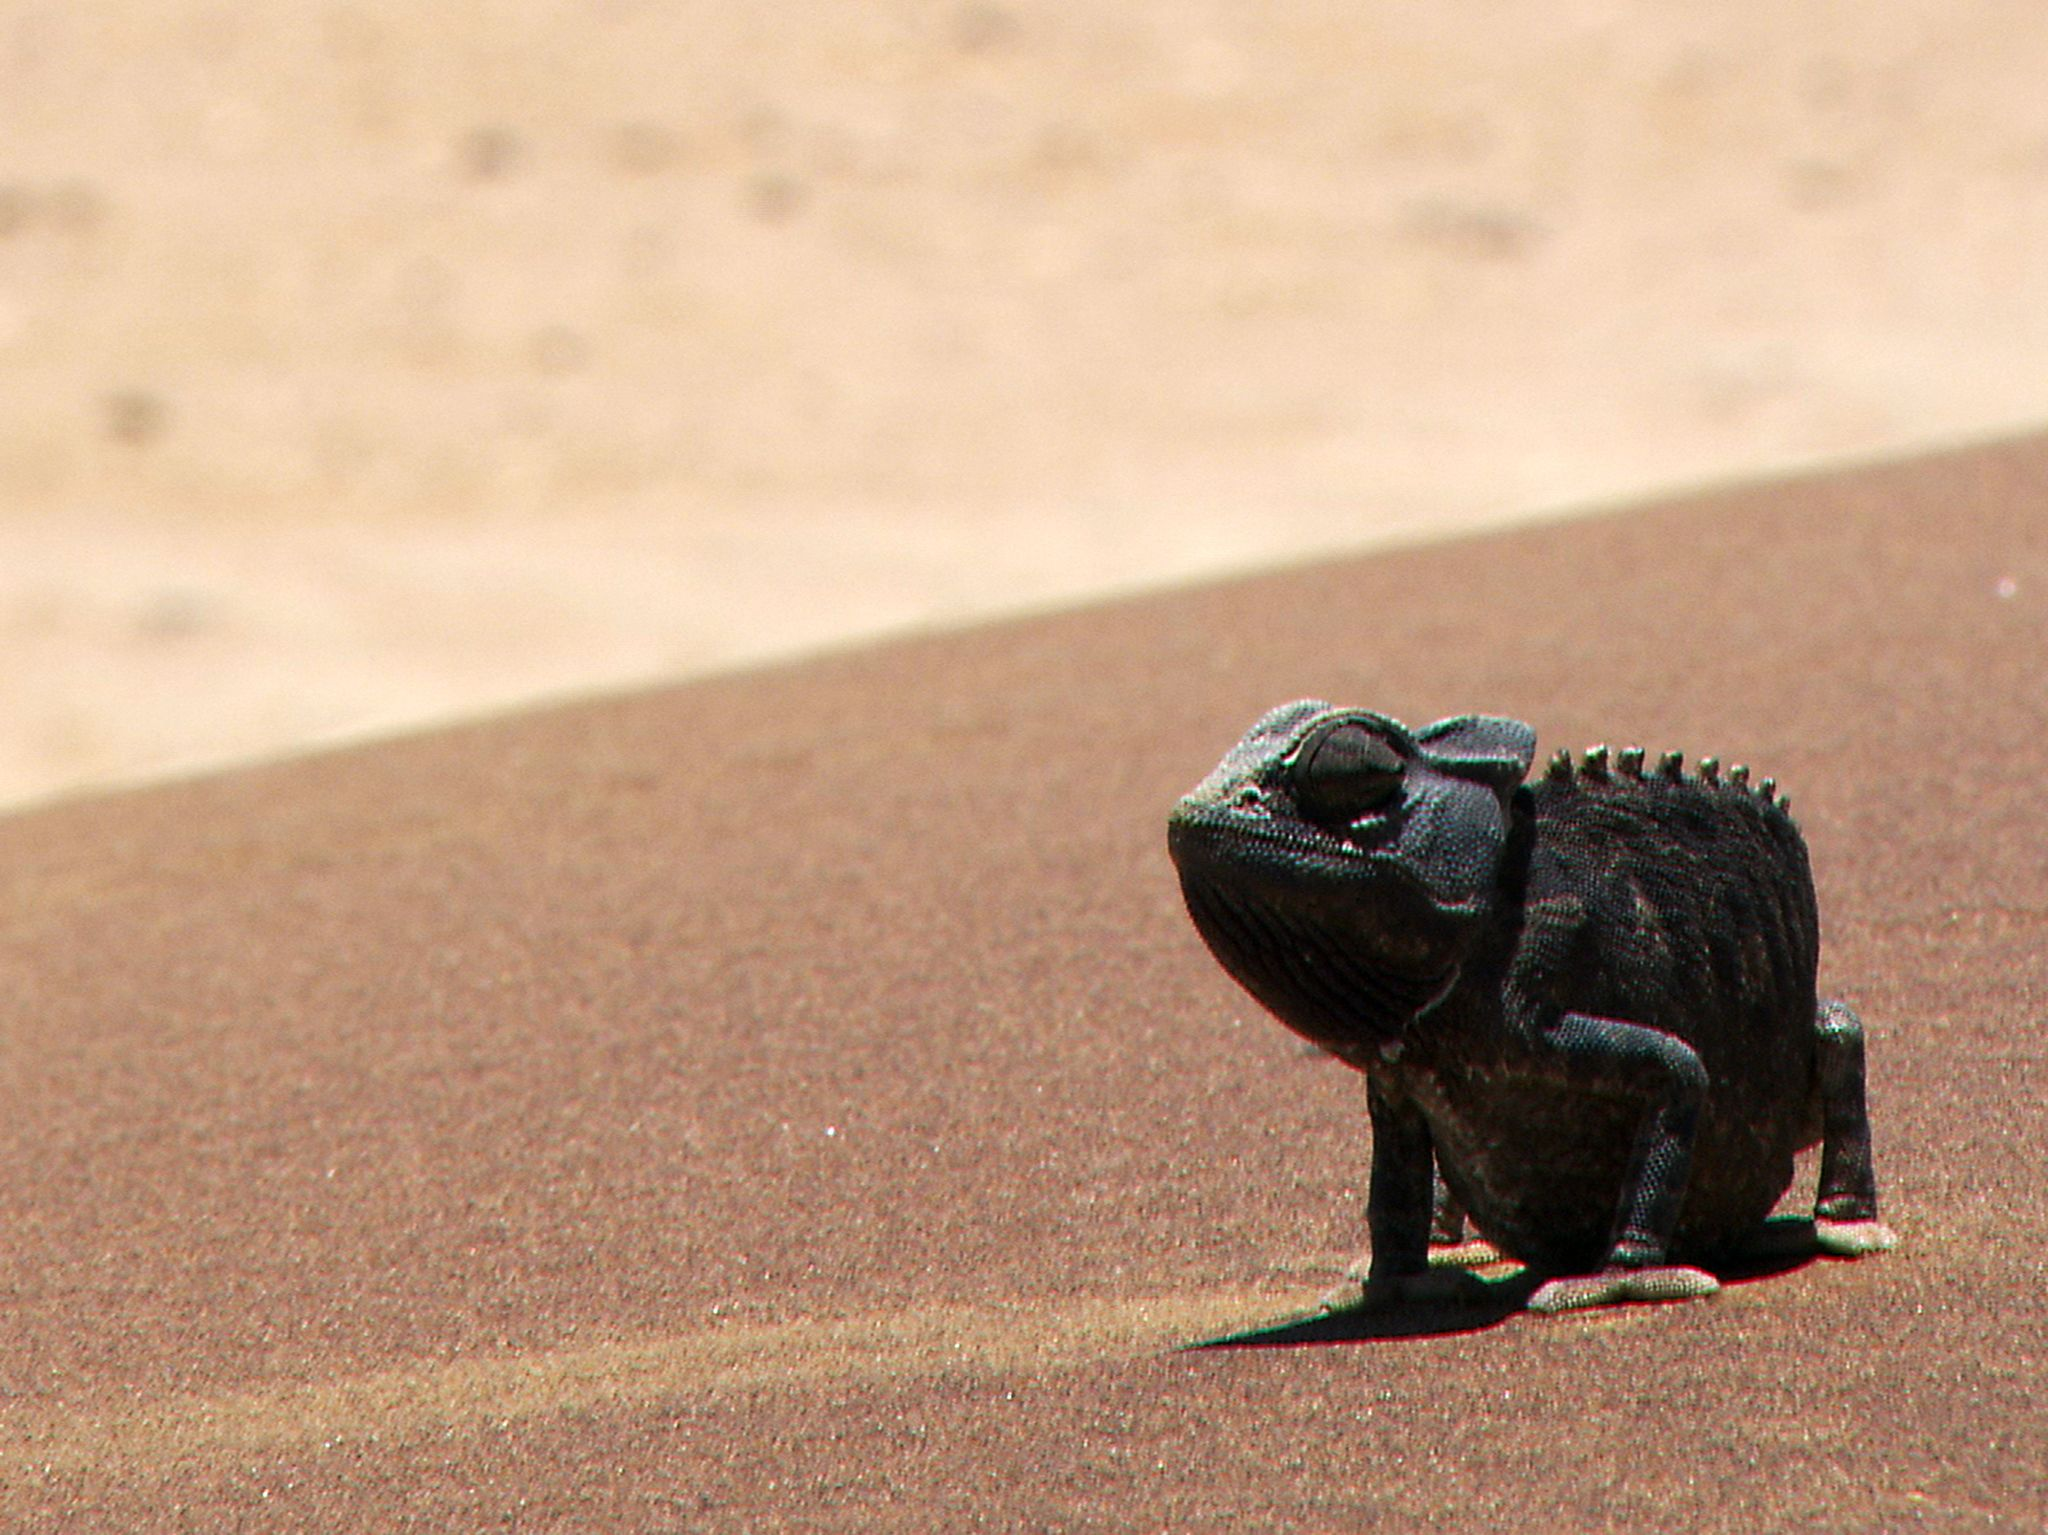 Namib desert, Namibia:  Namaqua Chameleon on desert sand dune.  This image is from Africa's... [Photo of the day - February 2019]